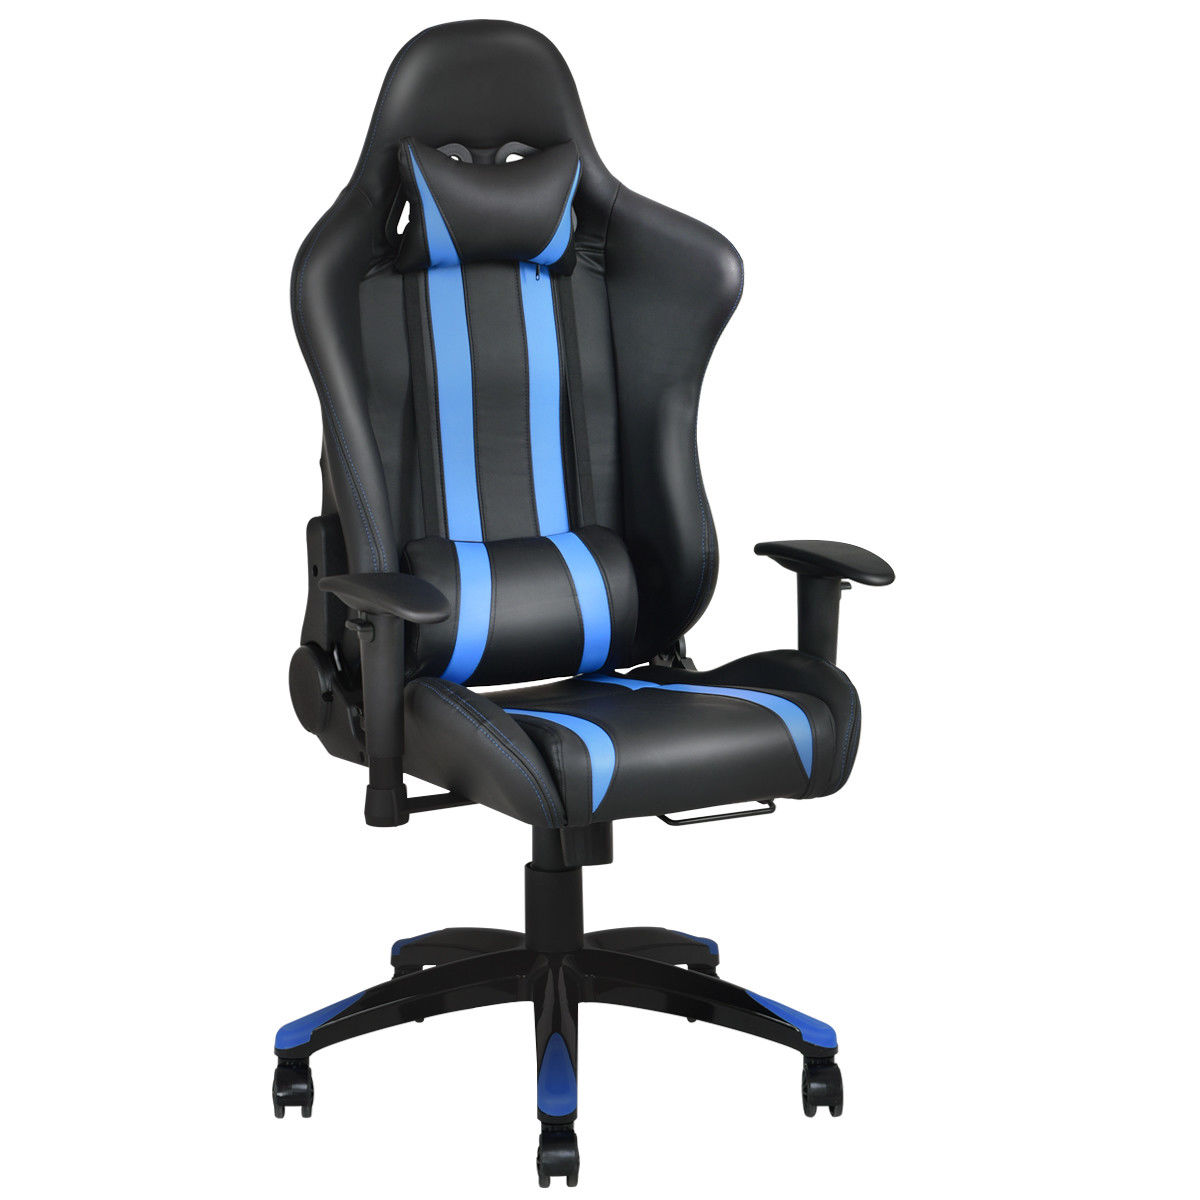 Us 137 99 Giantex Modern Office Chair Racing High Back Reclining Gaming Chair Ergonomic Computer Desk Chair Office Furniture Hw53993bl In Office